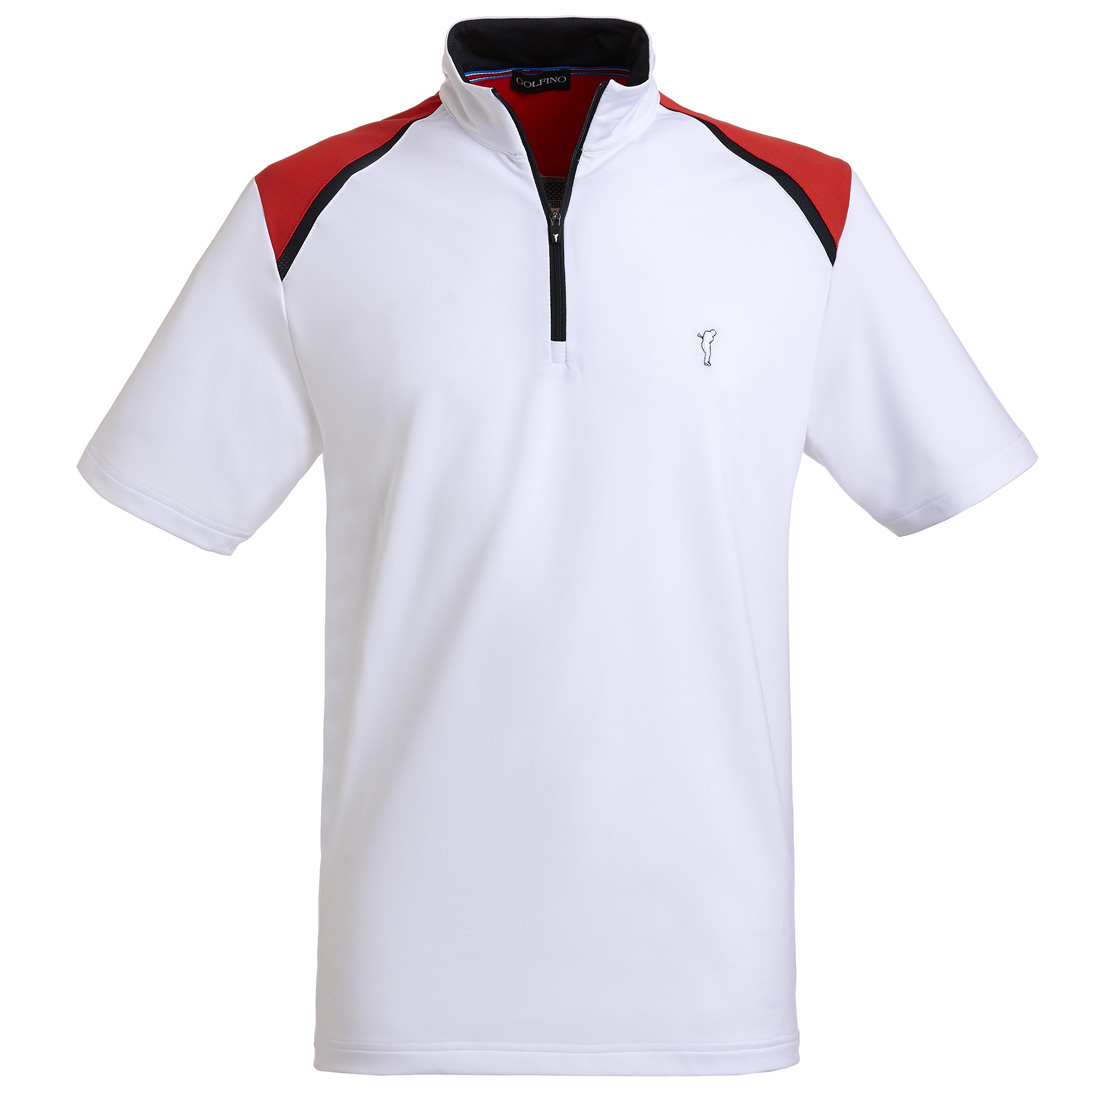 Golf-Funktionspolo Techno Jersey in Comfortable Fit